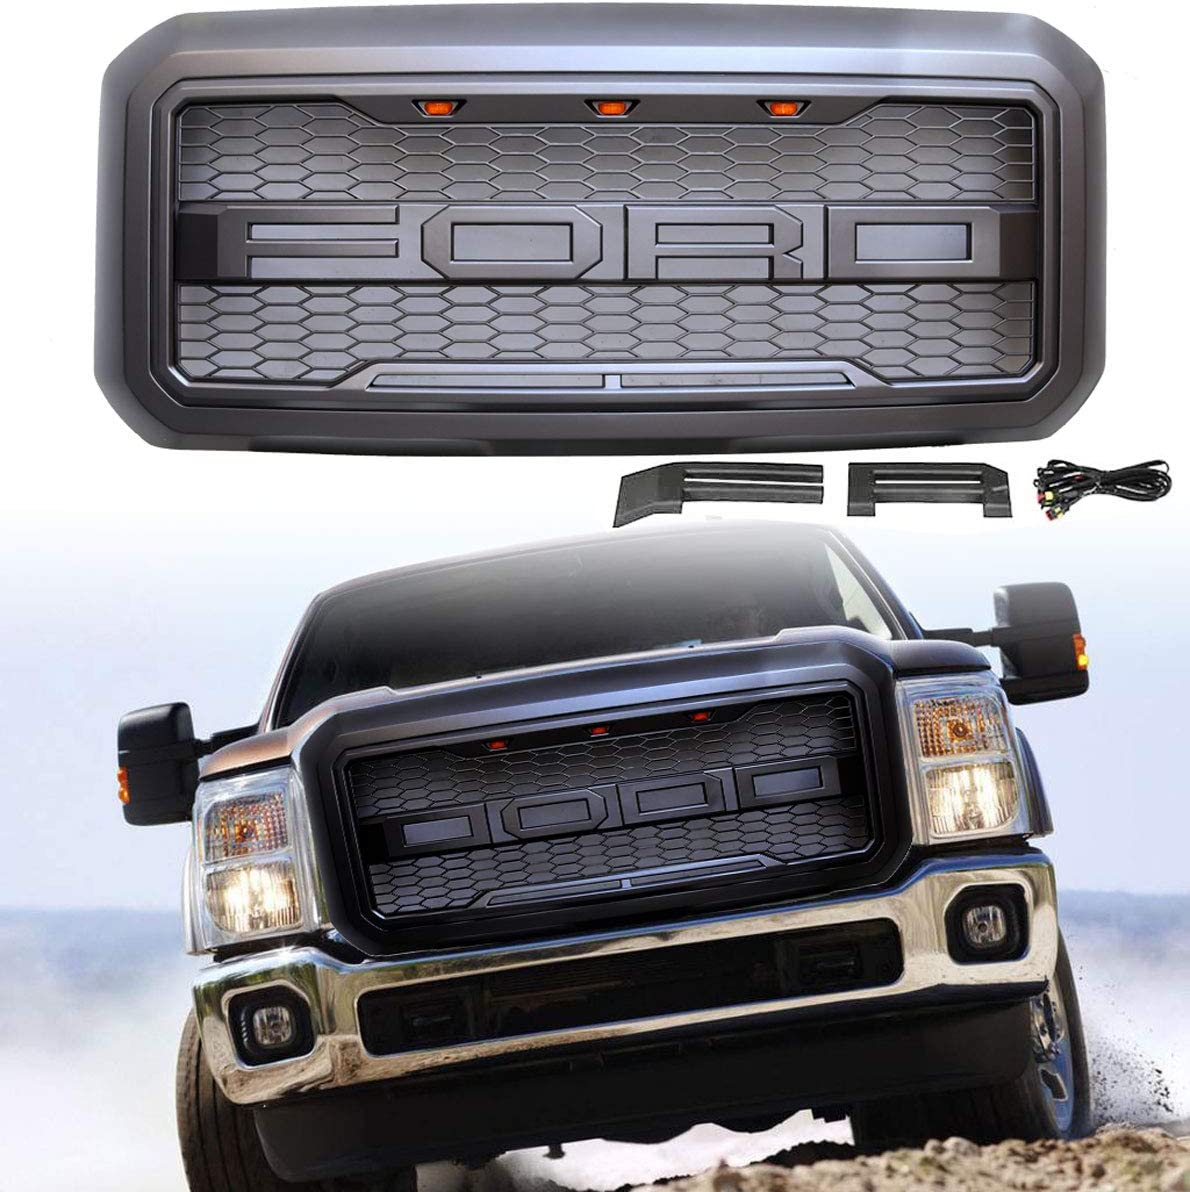 black Front Grill Grille Fit for 2011 2012 2013 2014 2015 2016 F-250 Ford F250 F350 F450 F550 With 3 Amber Lights /& Harness /& Letters Raptor Style Grill